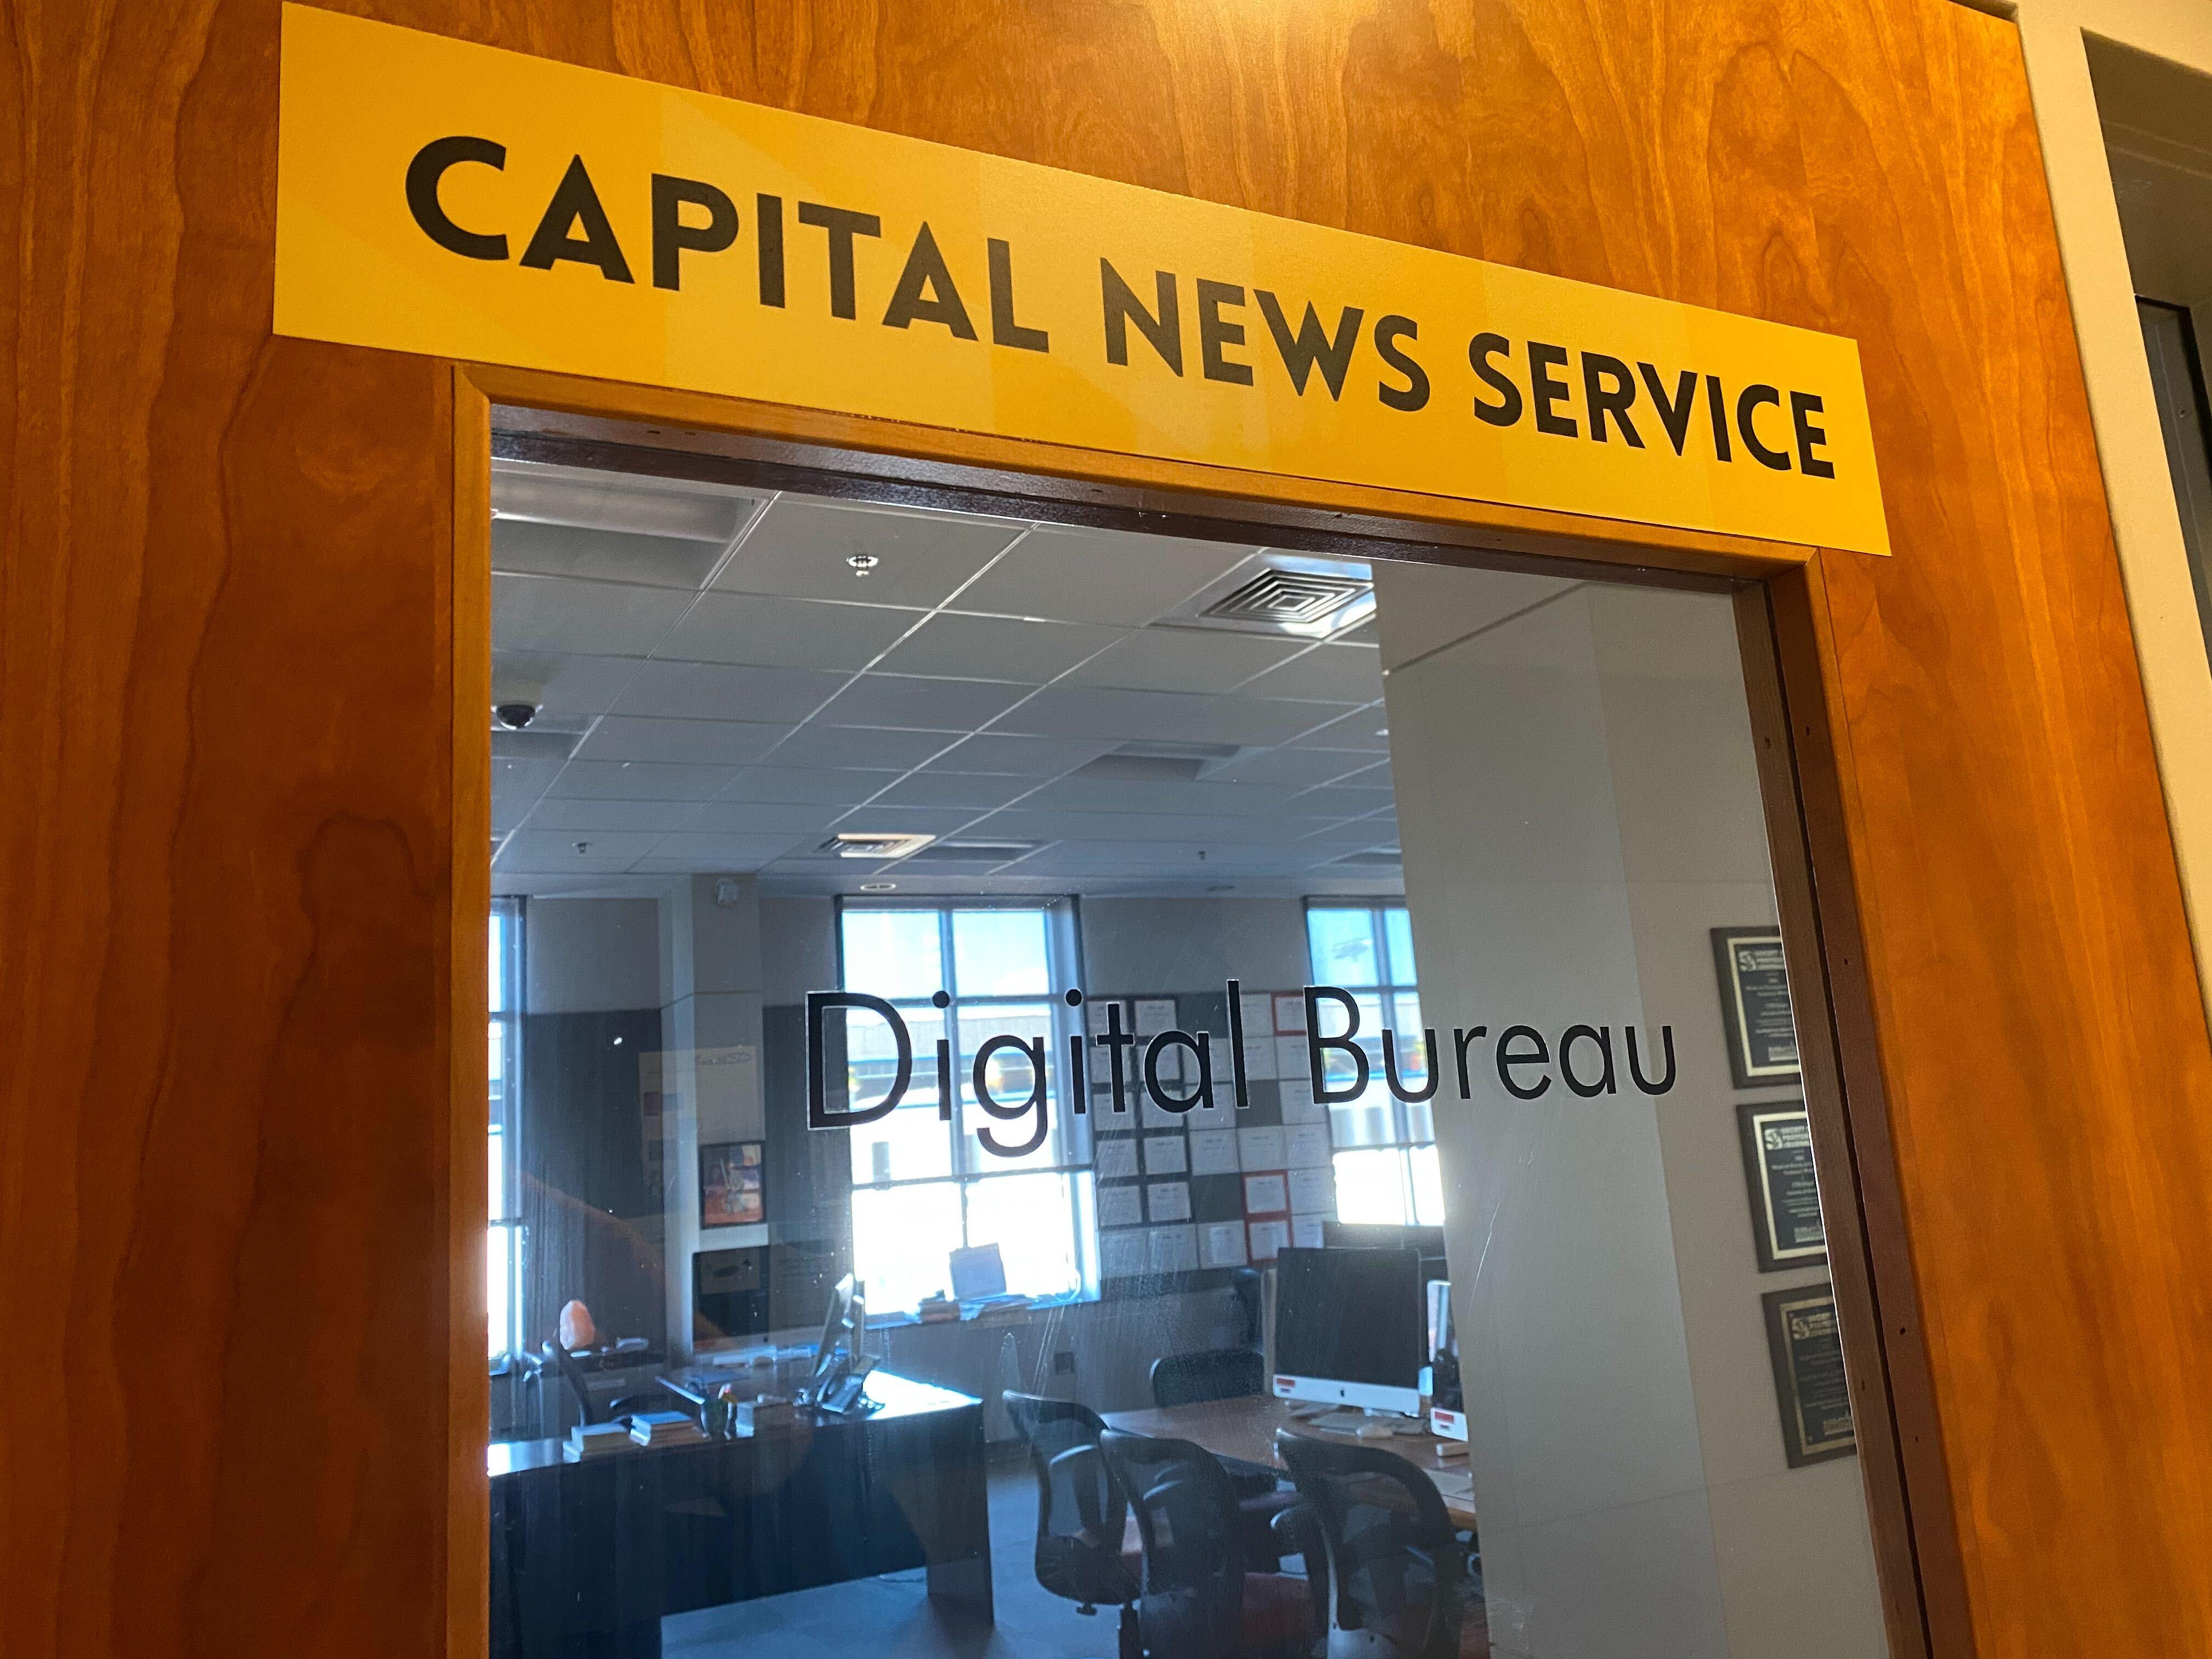 Capital News Service College Park Bureau